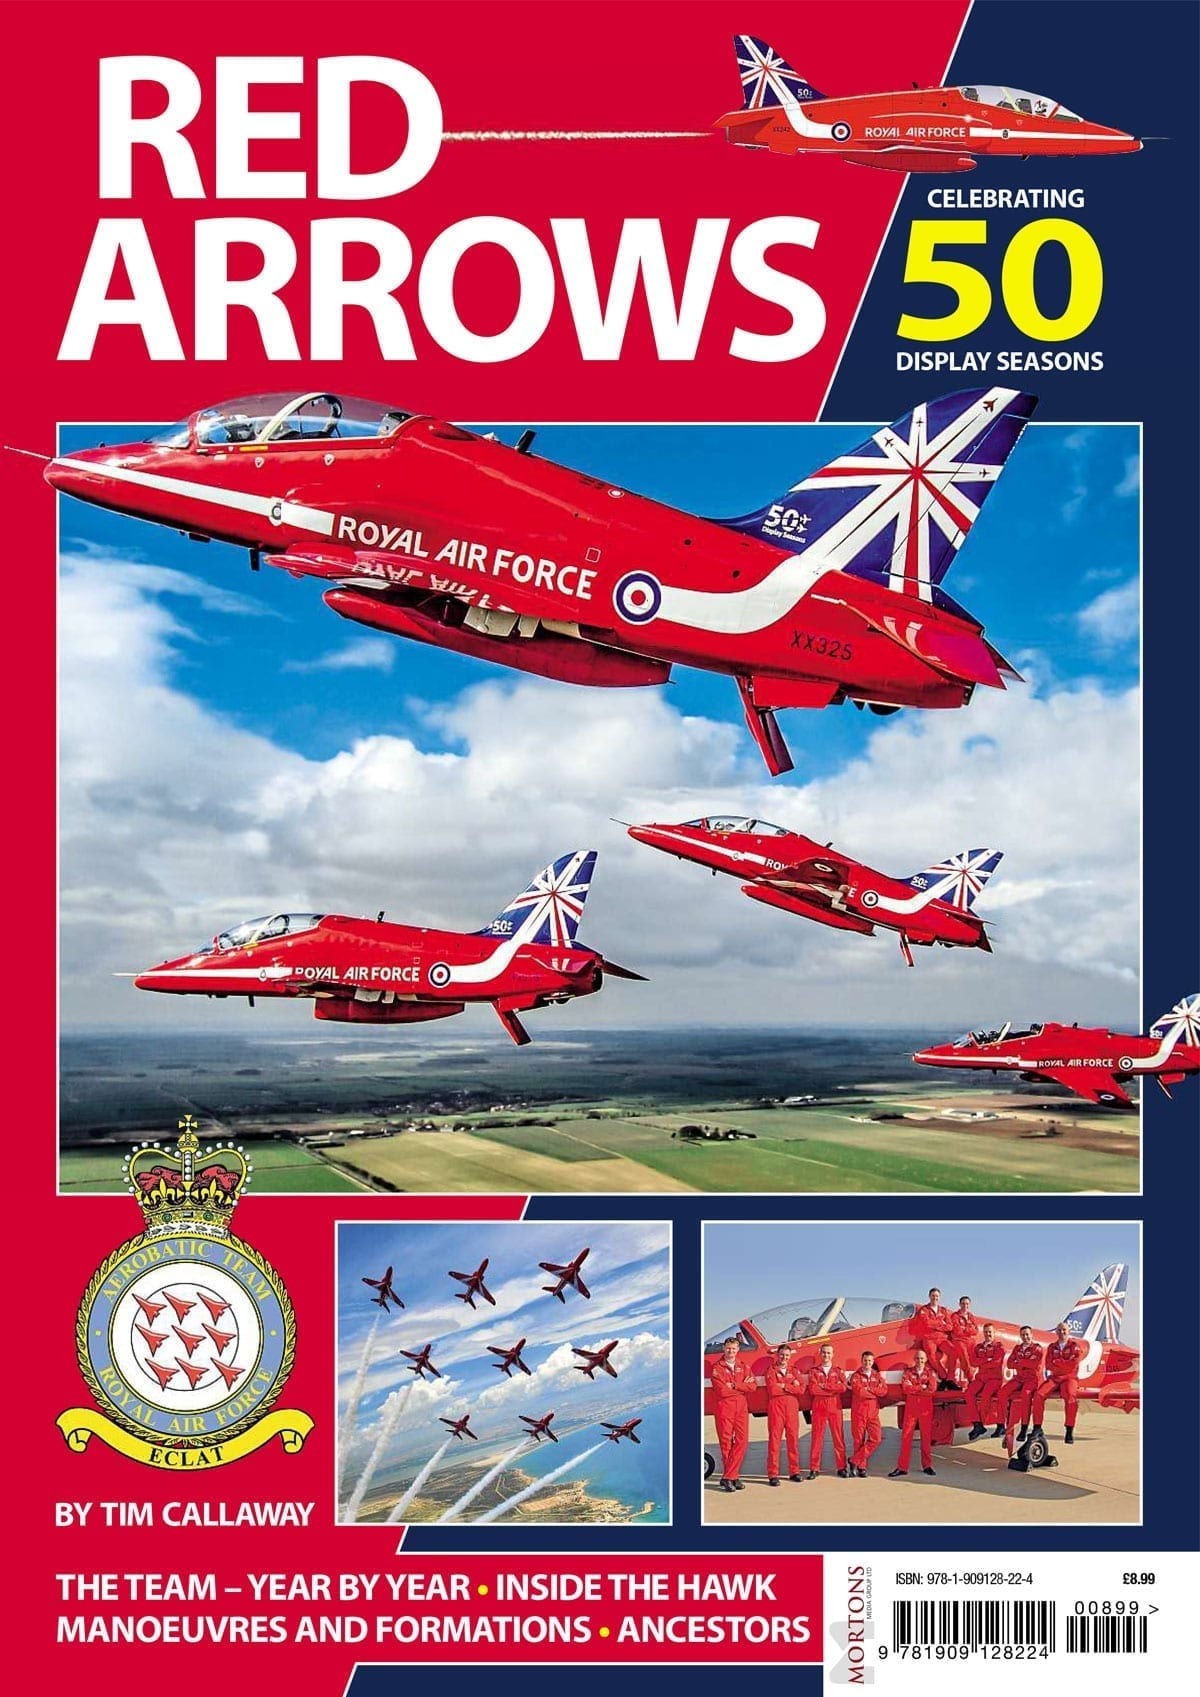 Red Arrows: Celebrating 50 Display Seasons